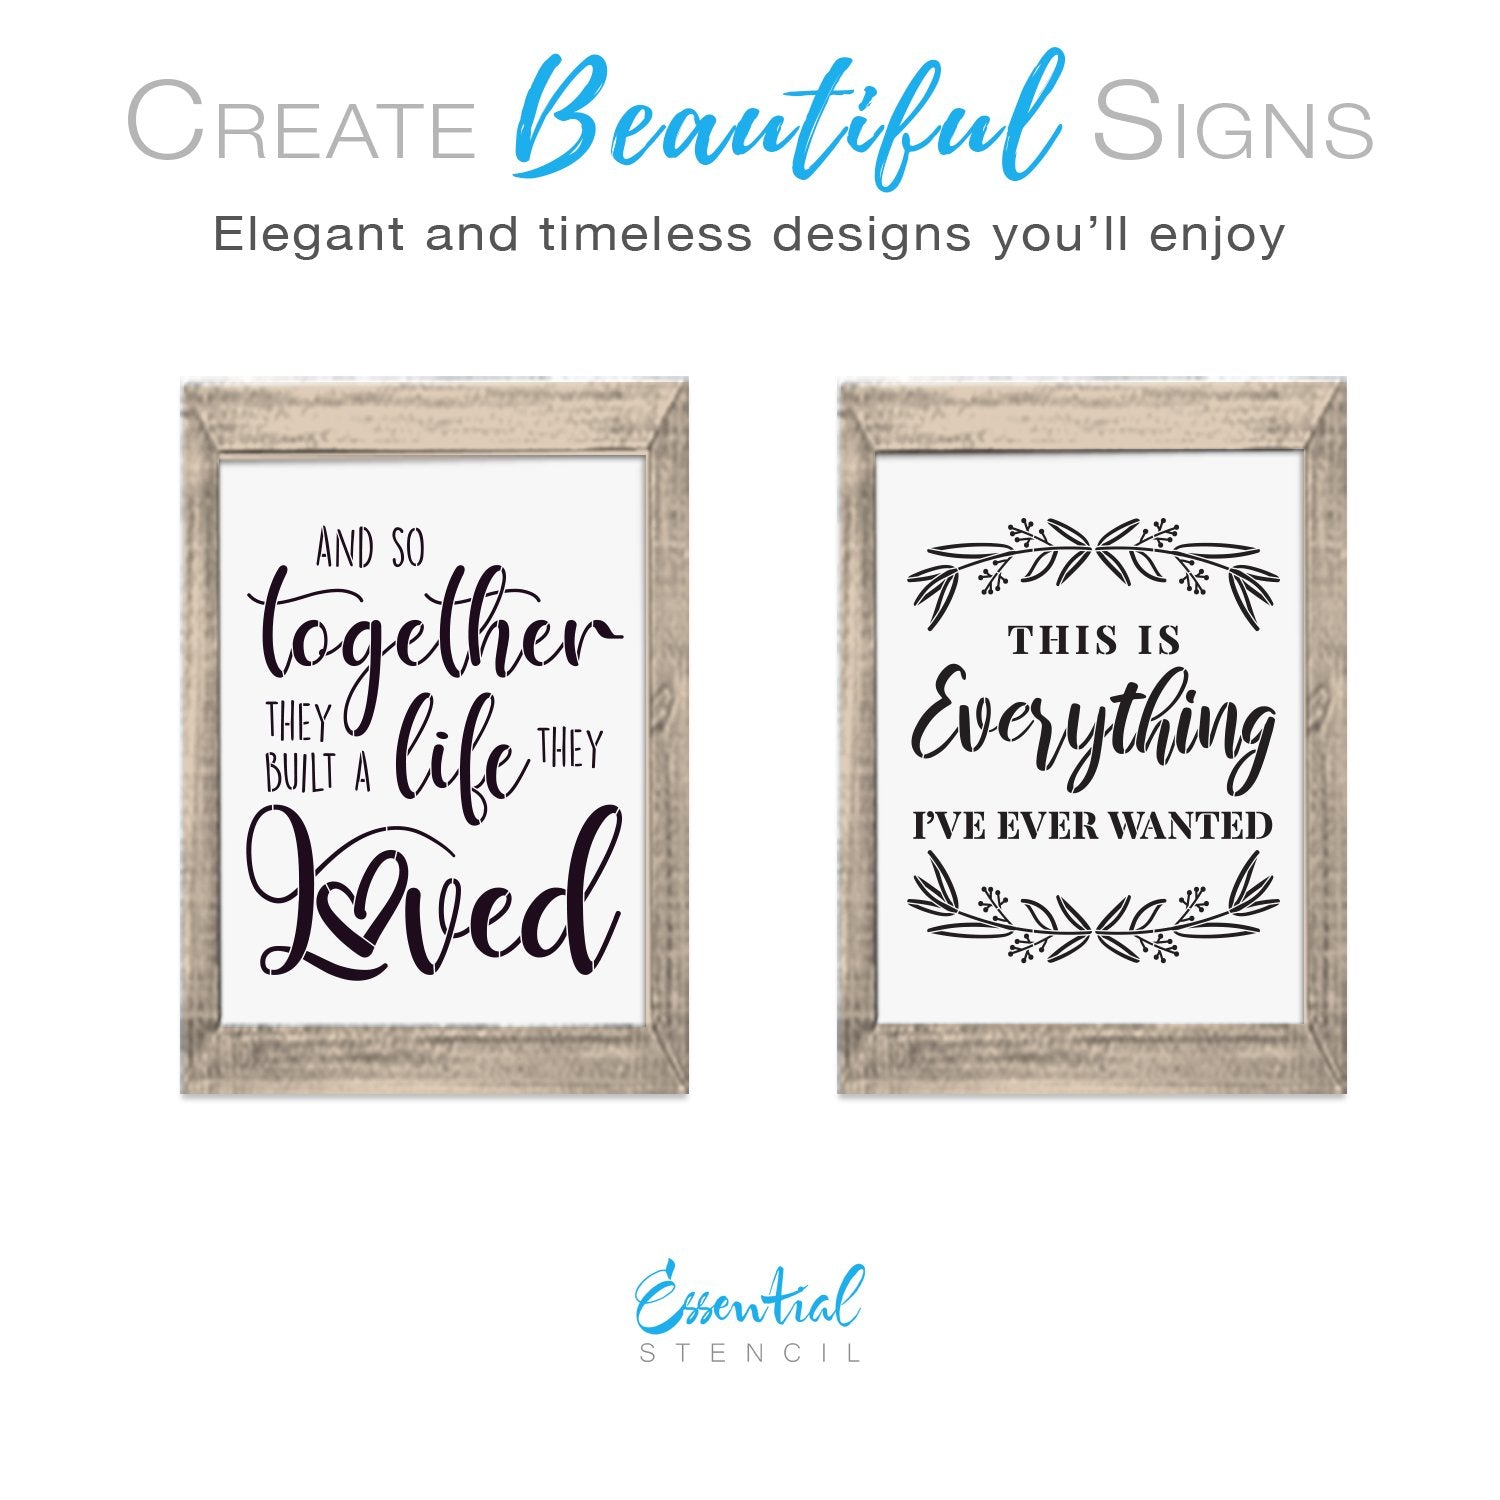 And so together they built a life they loved, This is everything I've ever wanted reusable stencils | DIY Farmhouse decor